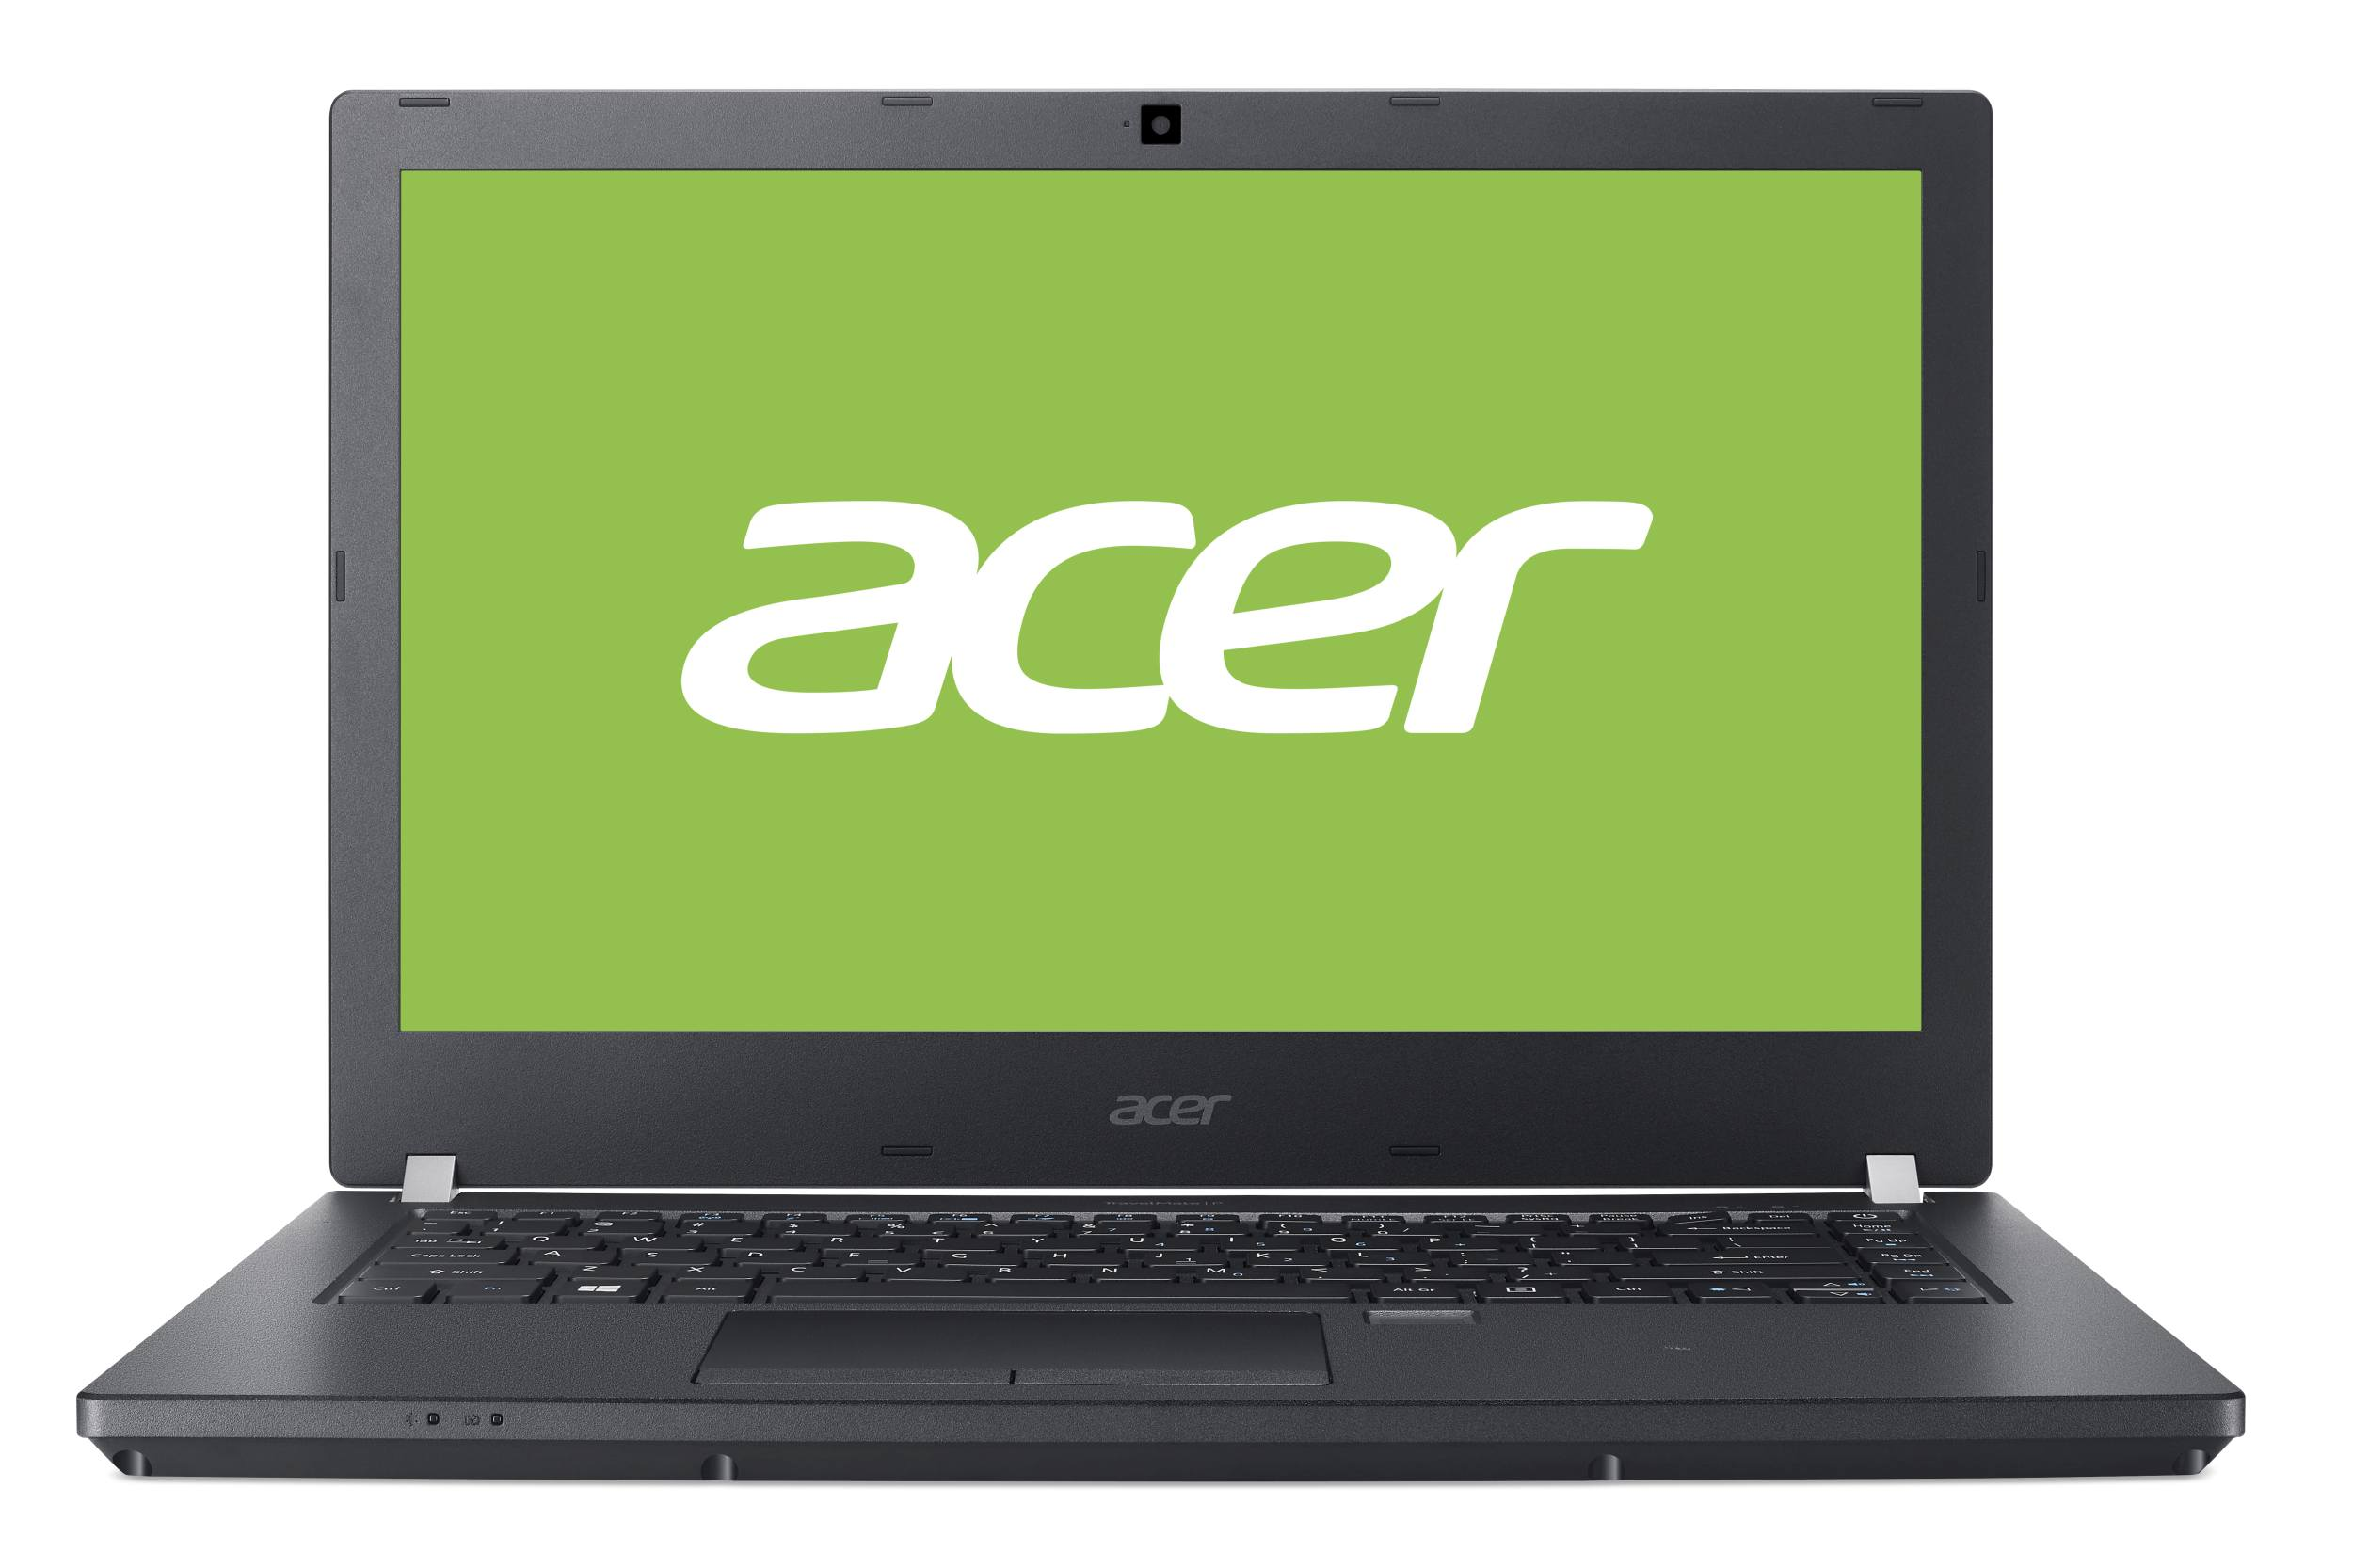 "AcerTravelMate TMP449-G2-M-56V9 i5-7200U/4GB+4GB/256GB PCIe SSD+N/HD Graphics/14"" FHD matný IPS LED/W10 Pro/Black"